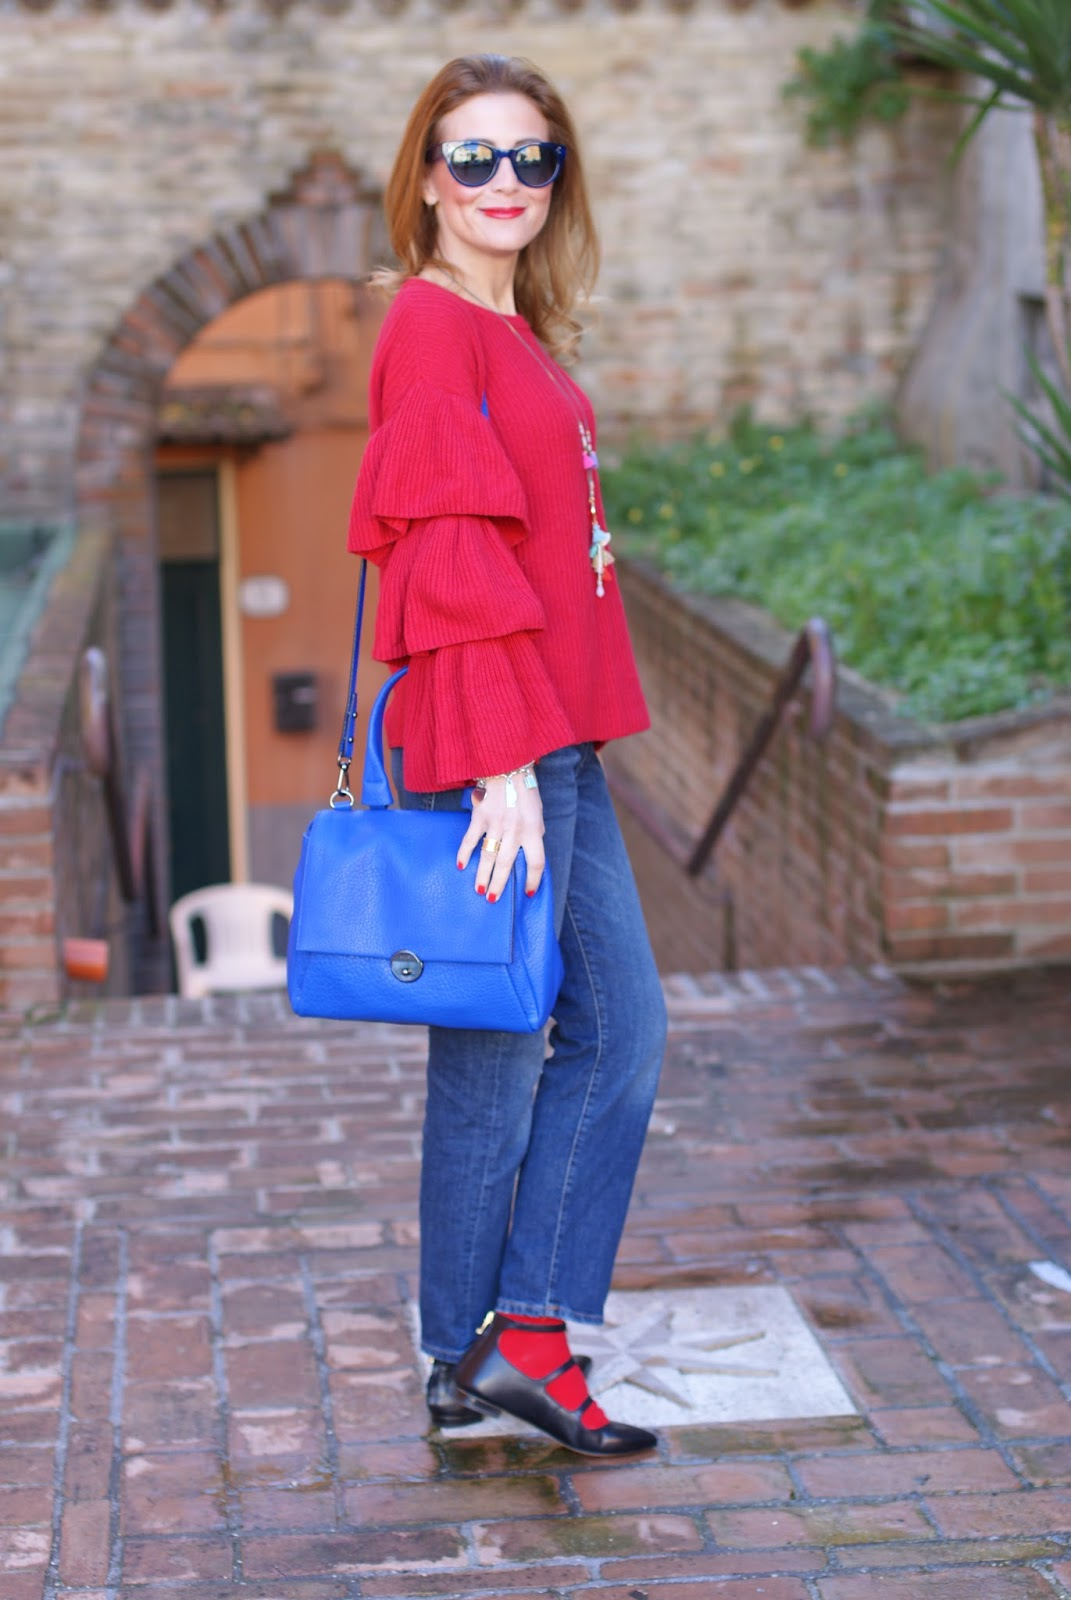 Ruffle sleeves top, Hype Glass sunglasses and Milly Wythe satchel bag on Fashion and Cookies fashion blog, fashion blogger style